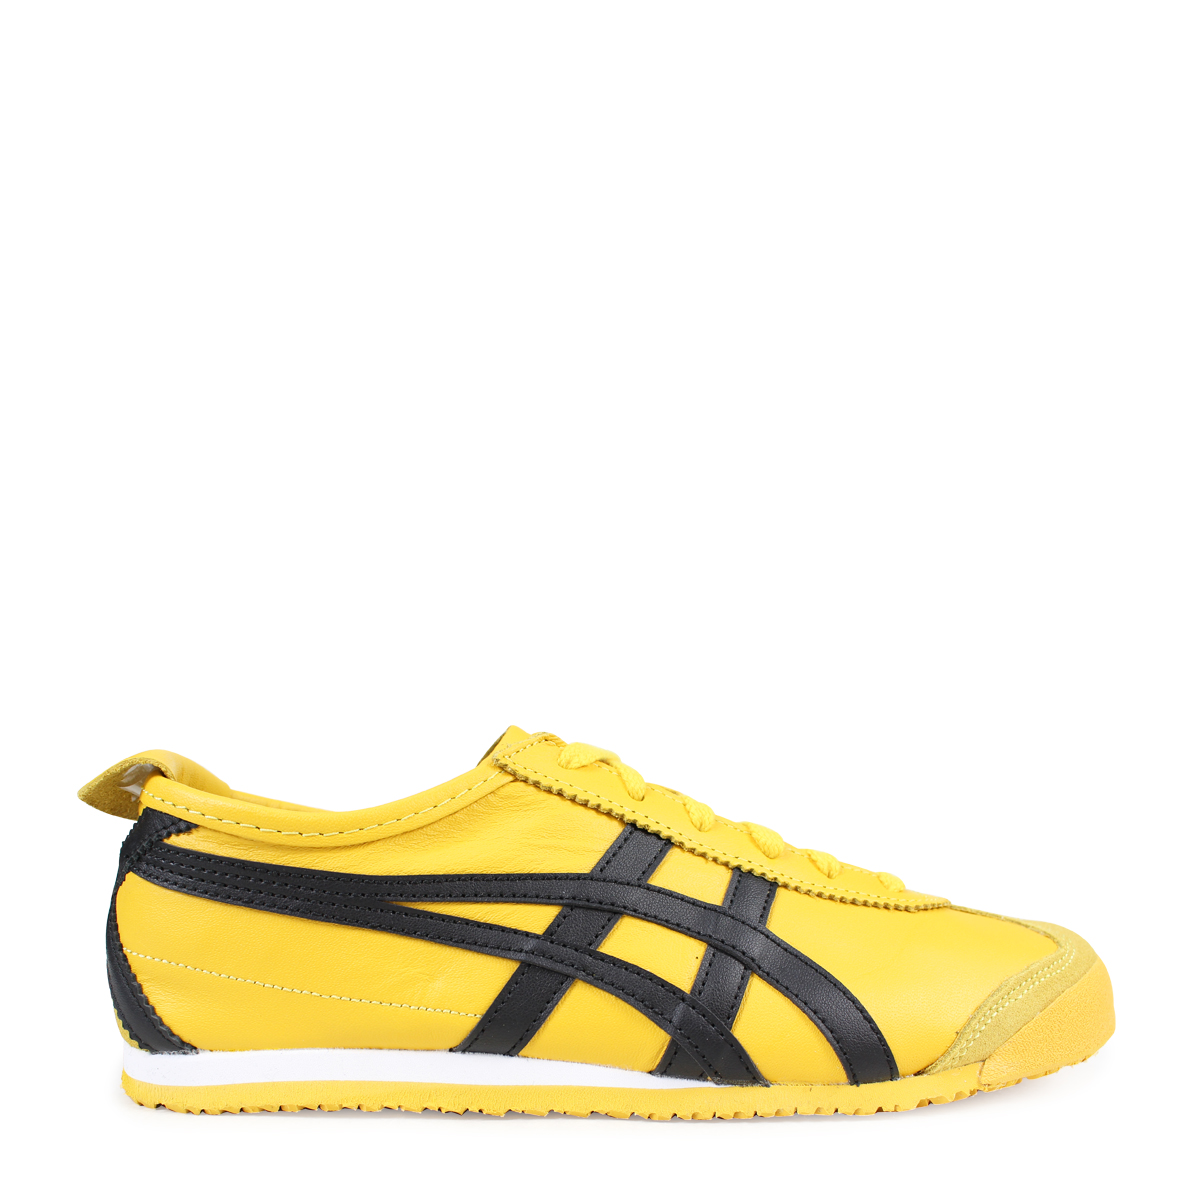 afb7281aa898 66 66 Onitsuka tiger Asics Onitsuka Tiger asics MEXICO THL202-0490 sneakers  Mexico suede X leather men suede cloth yellow  1 31 Shinnyu load   regular